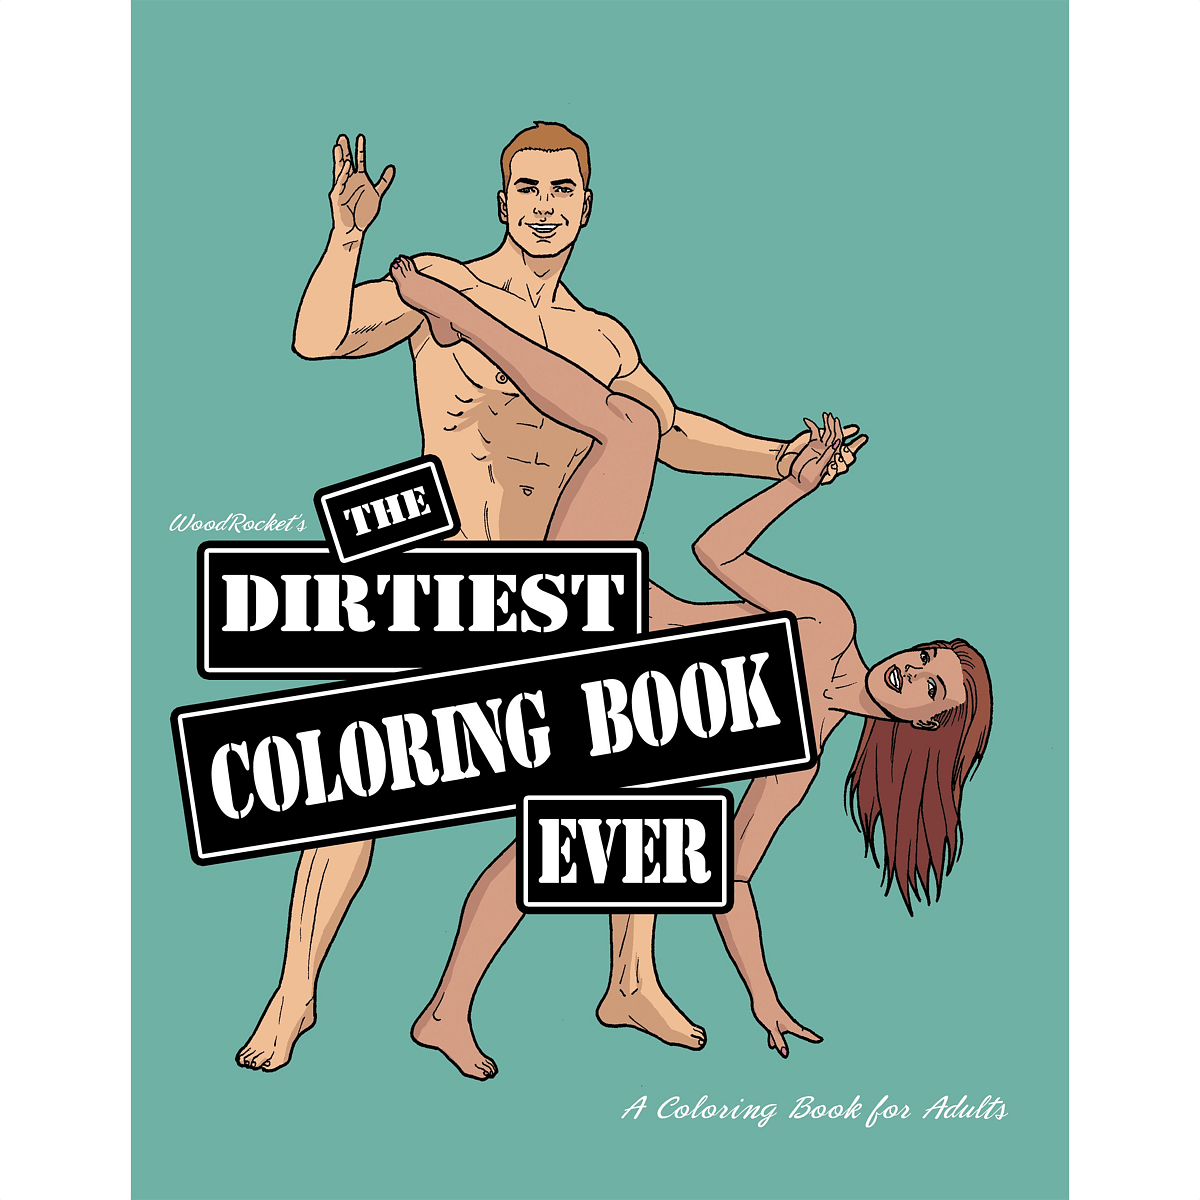 DIRTIEST COLORING BOOK EVER